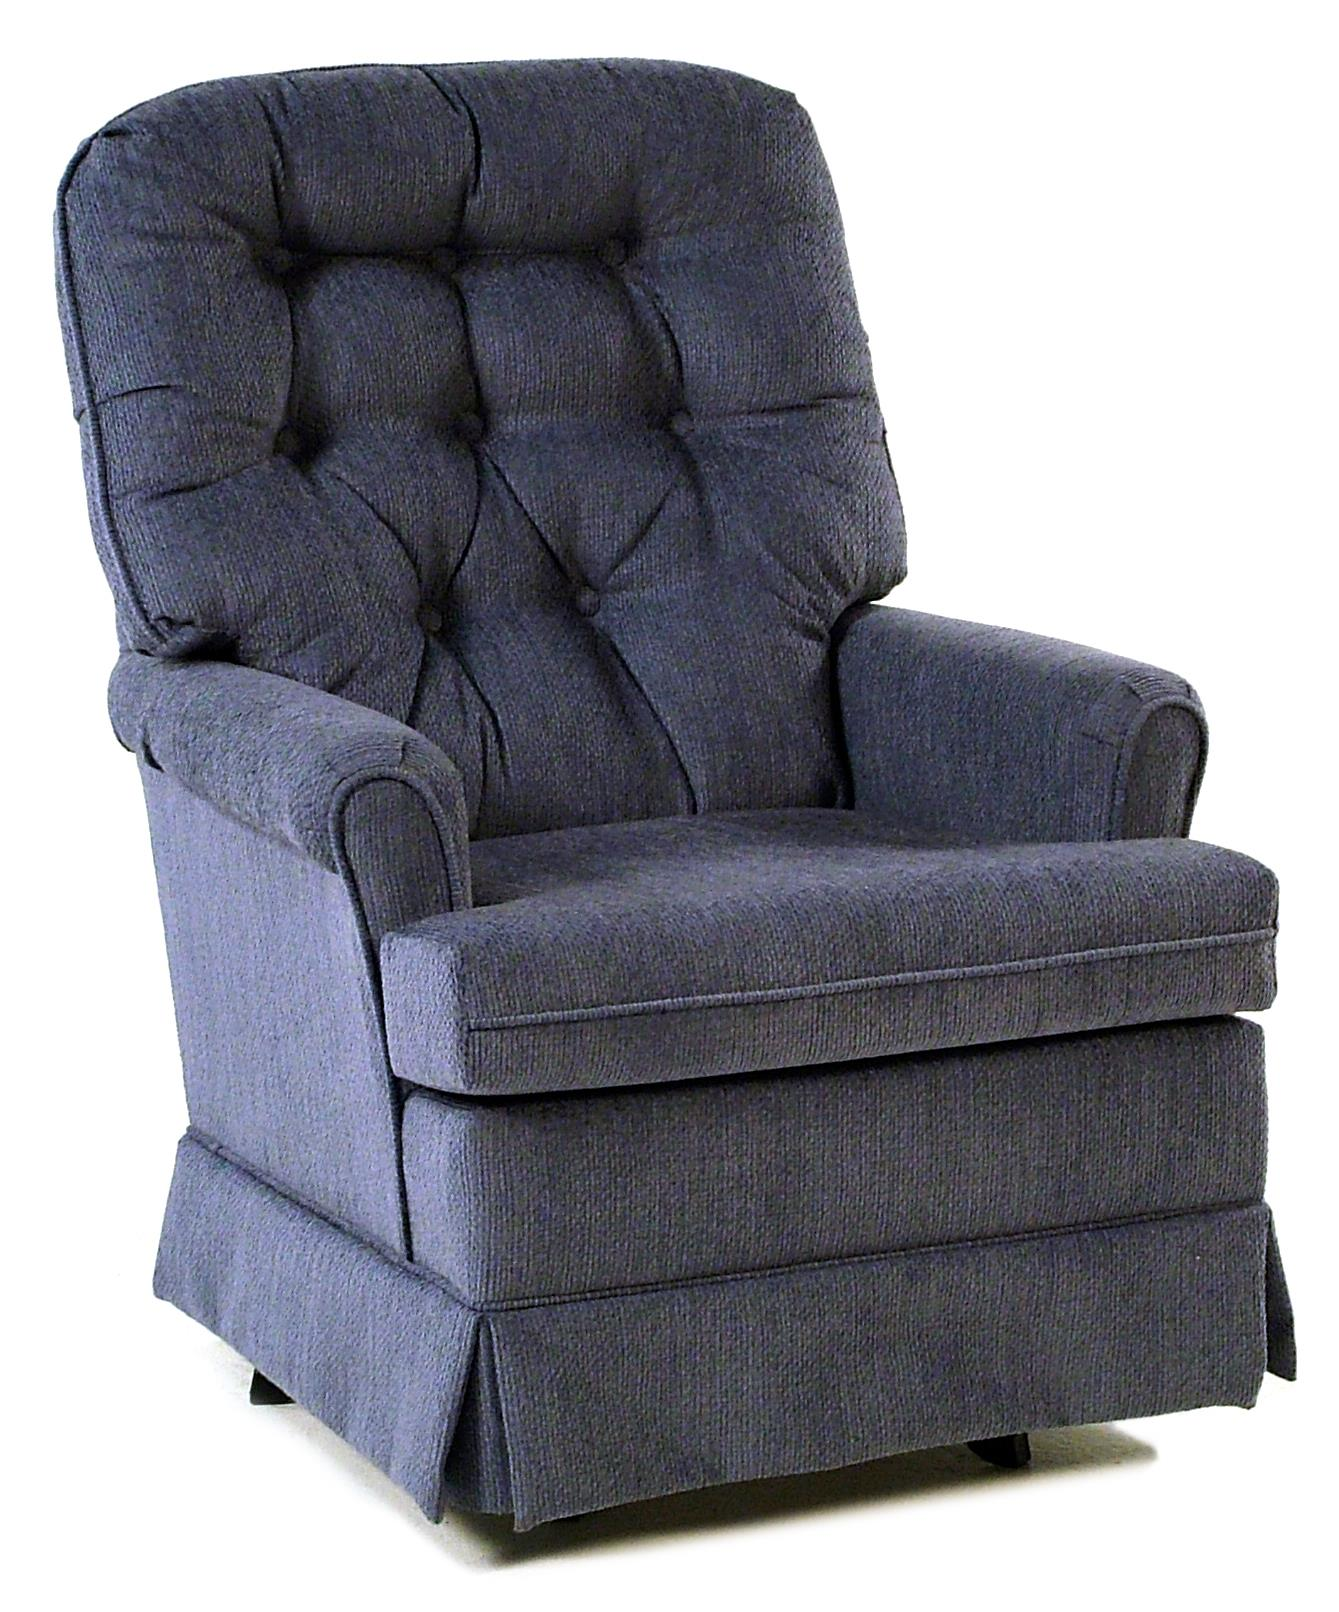 Best Home Furnishings Chairs - Swivel Glide Swivel Glide Chair - Item Number: H1009